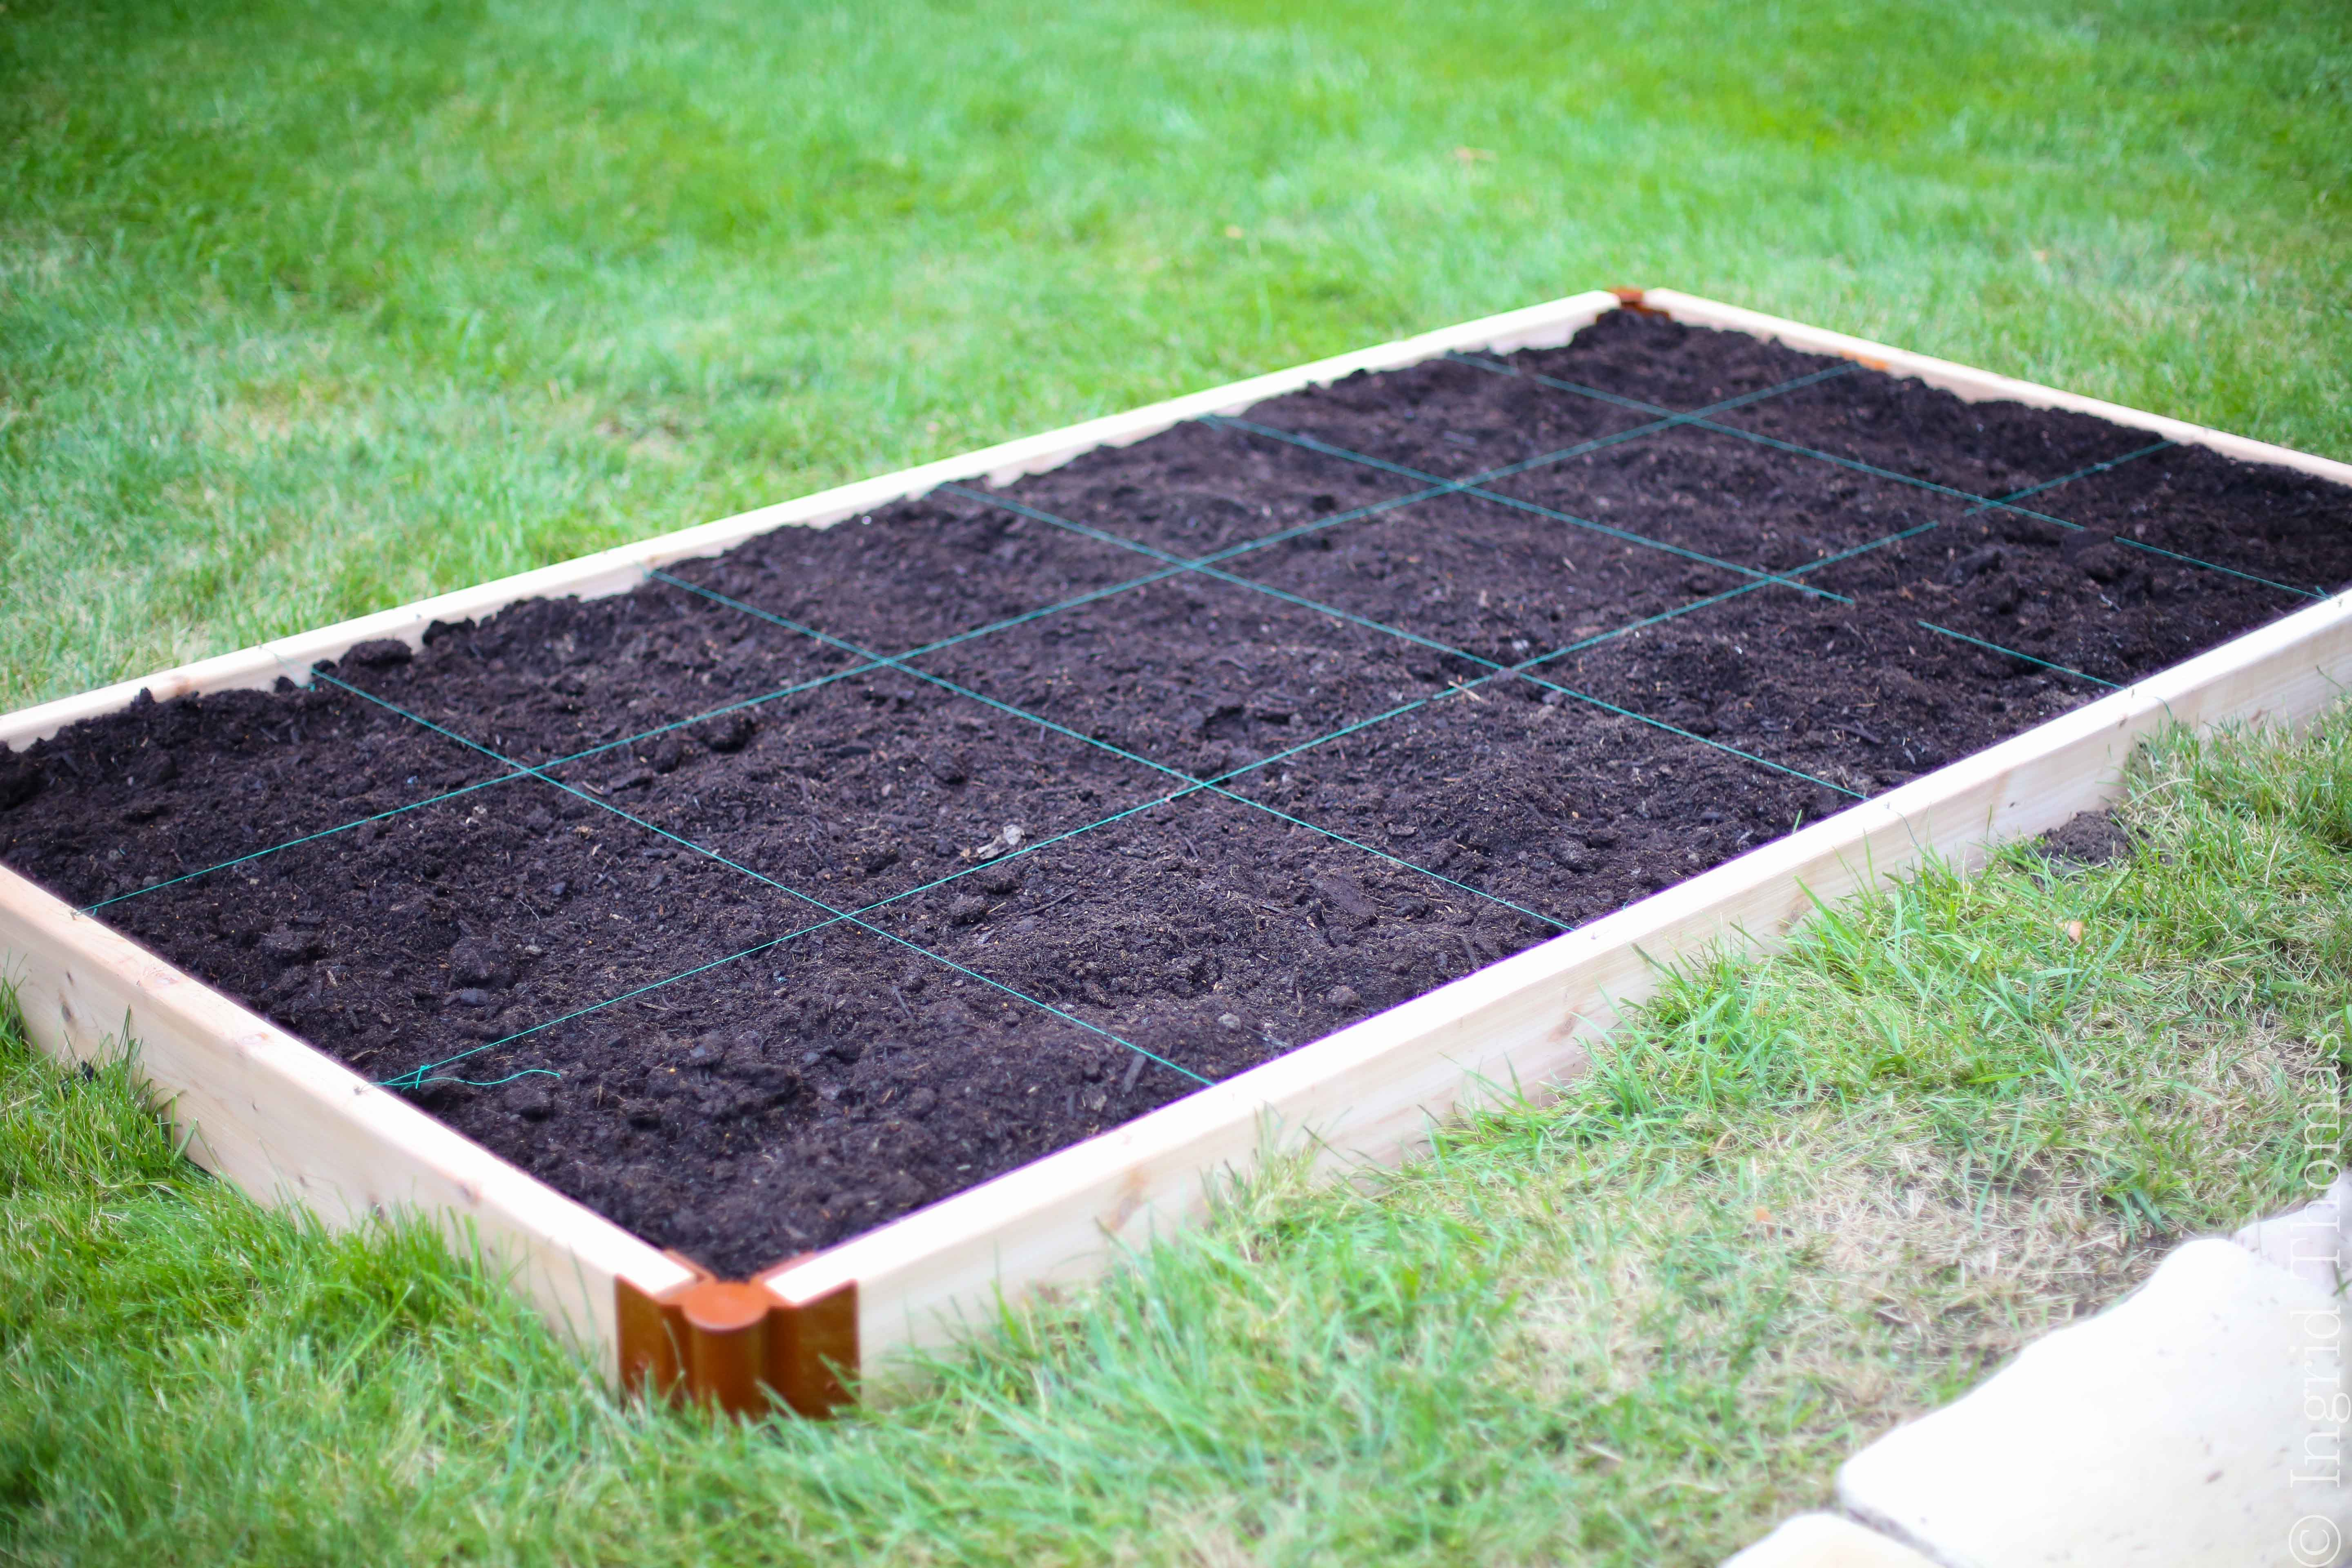 square foot ahem I mean meter gardening the nitty gritty